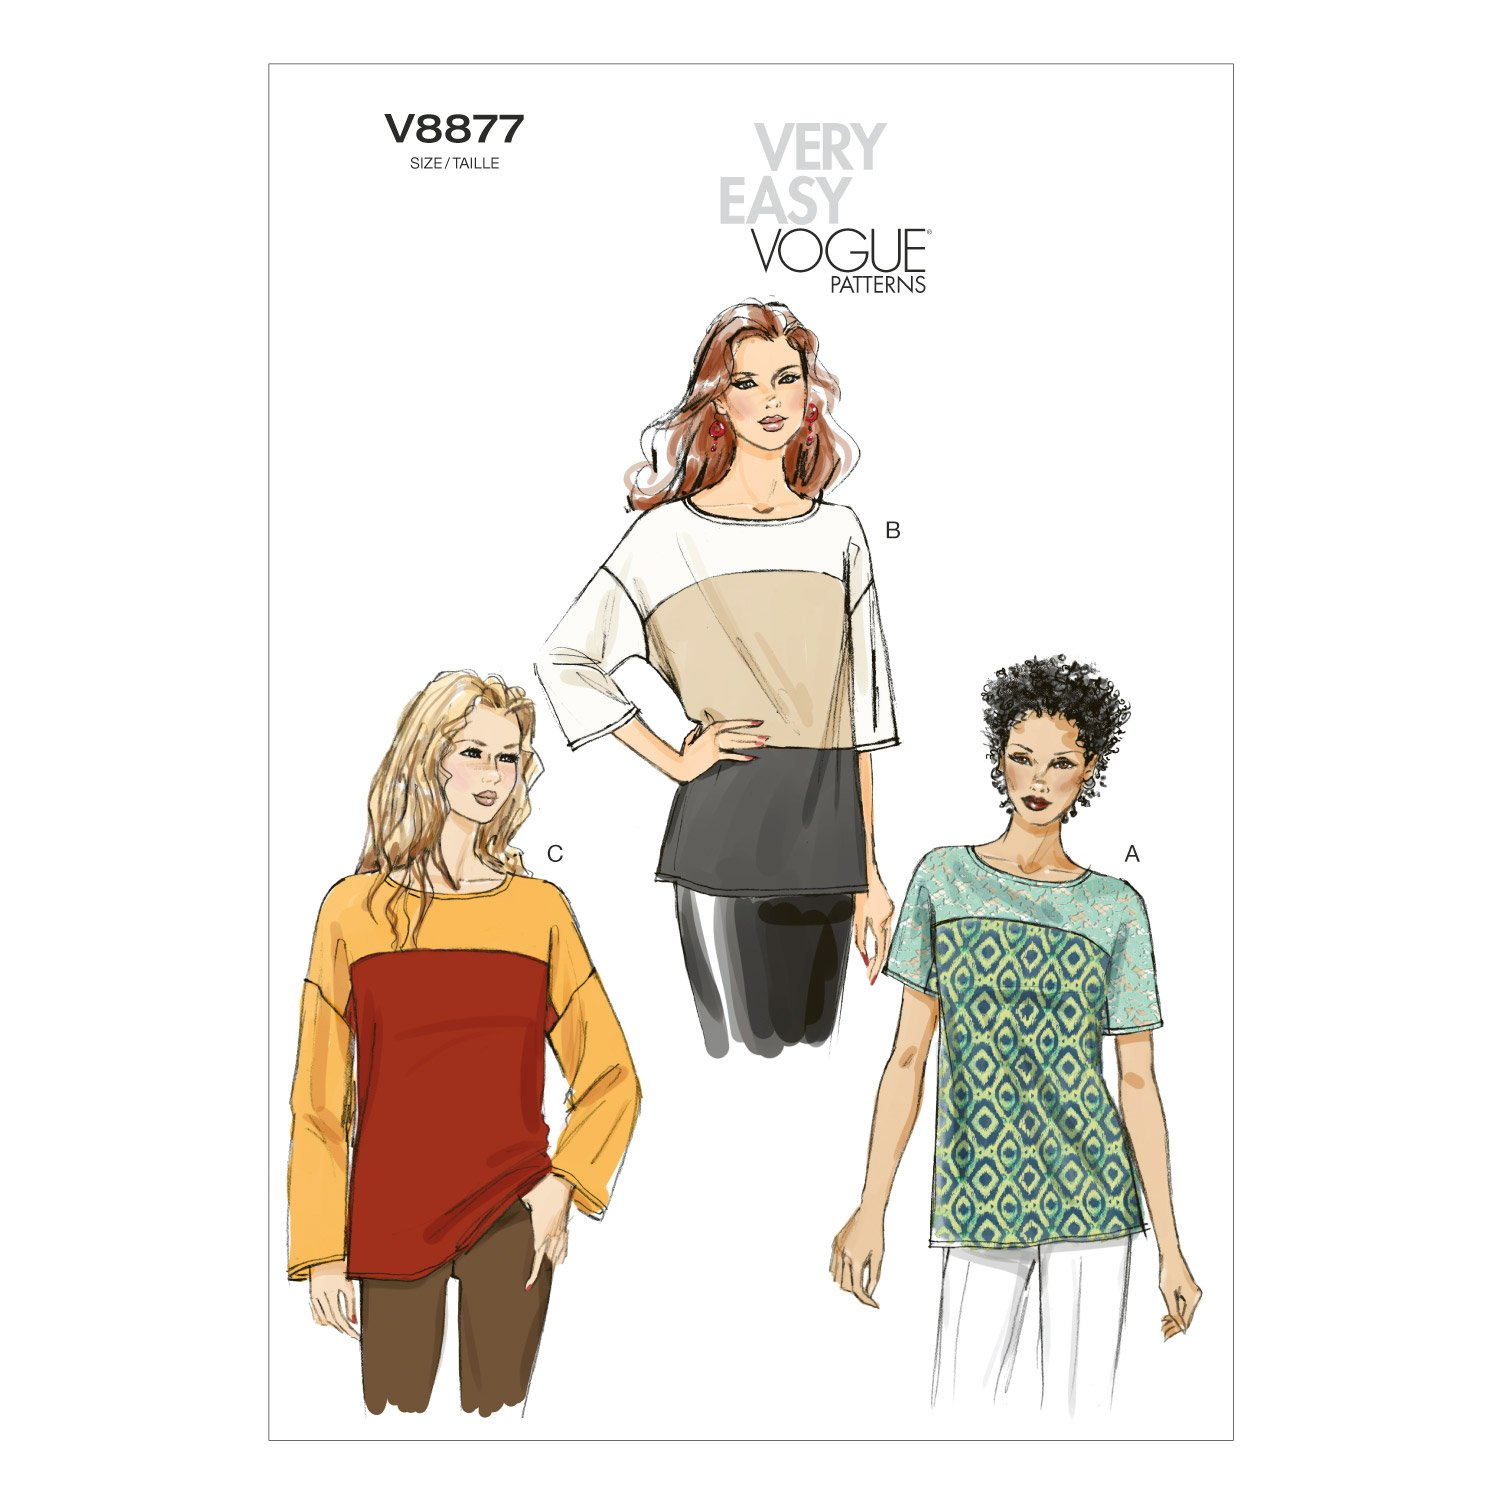 Vogue Patterns V8877 - Patrones de costura para camisetas de mujer (tallas L, XL y XXL): Amazon.es: Hogar